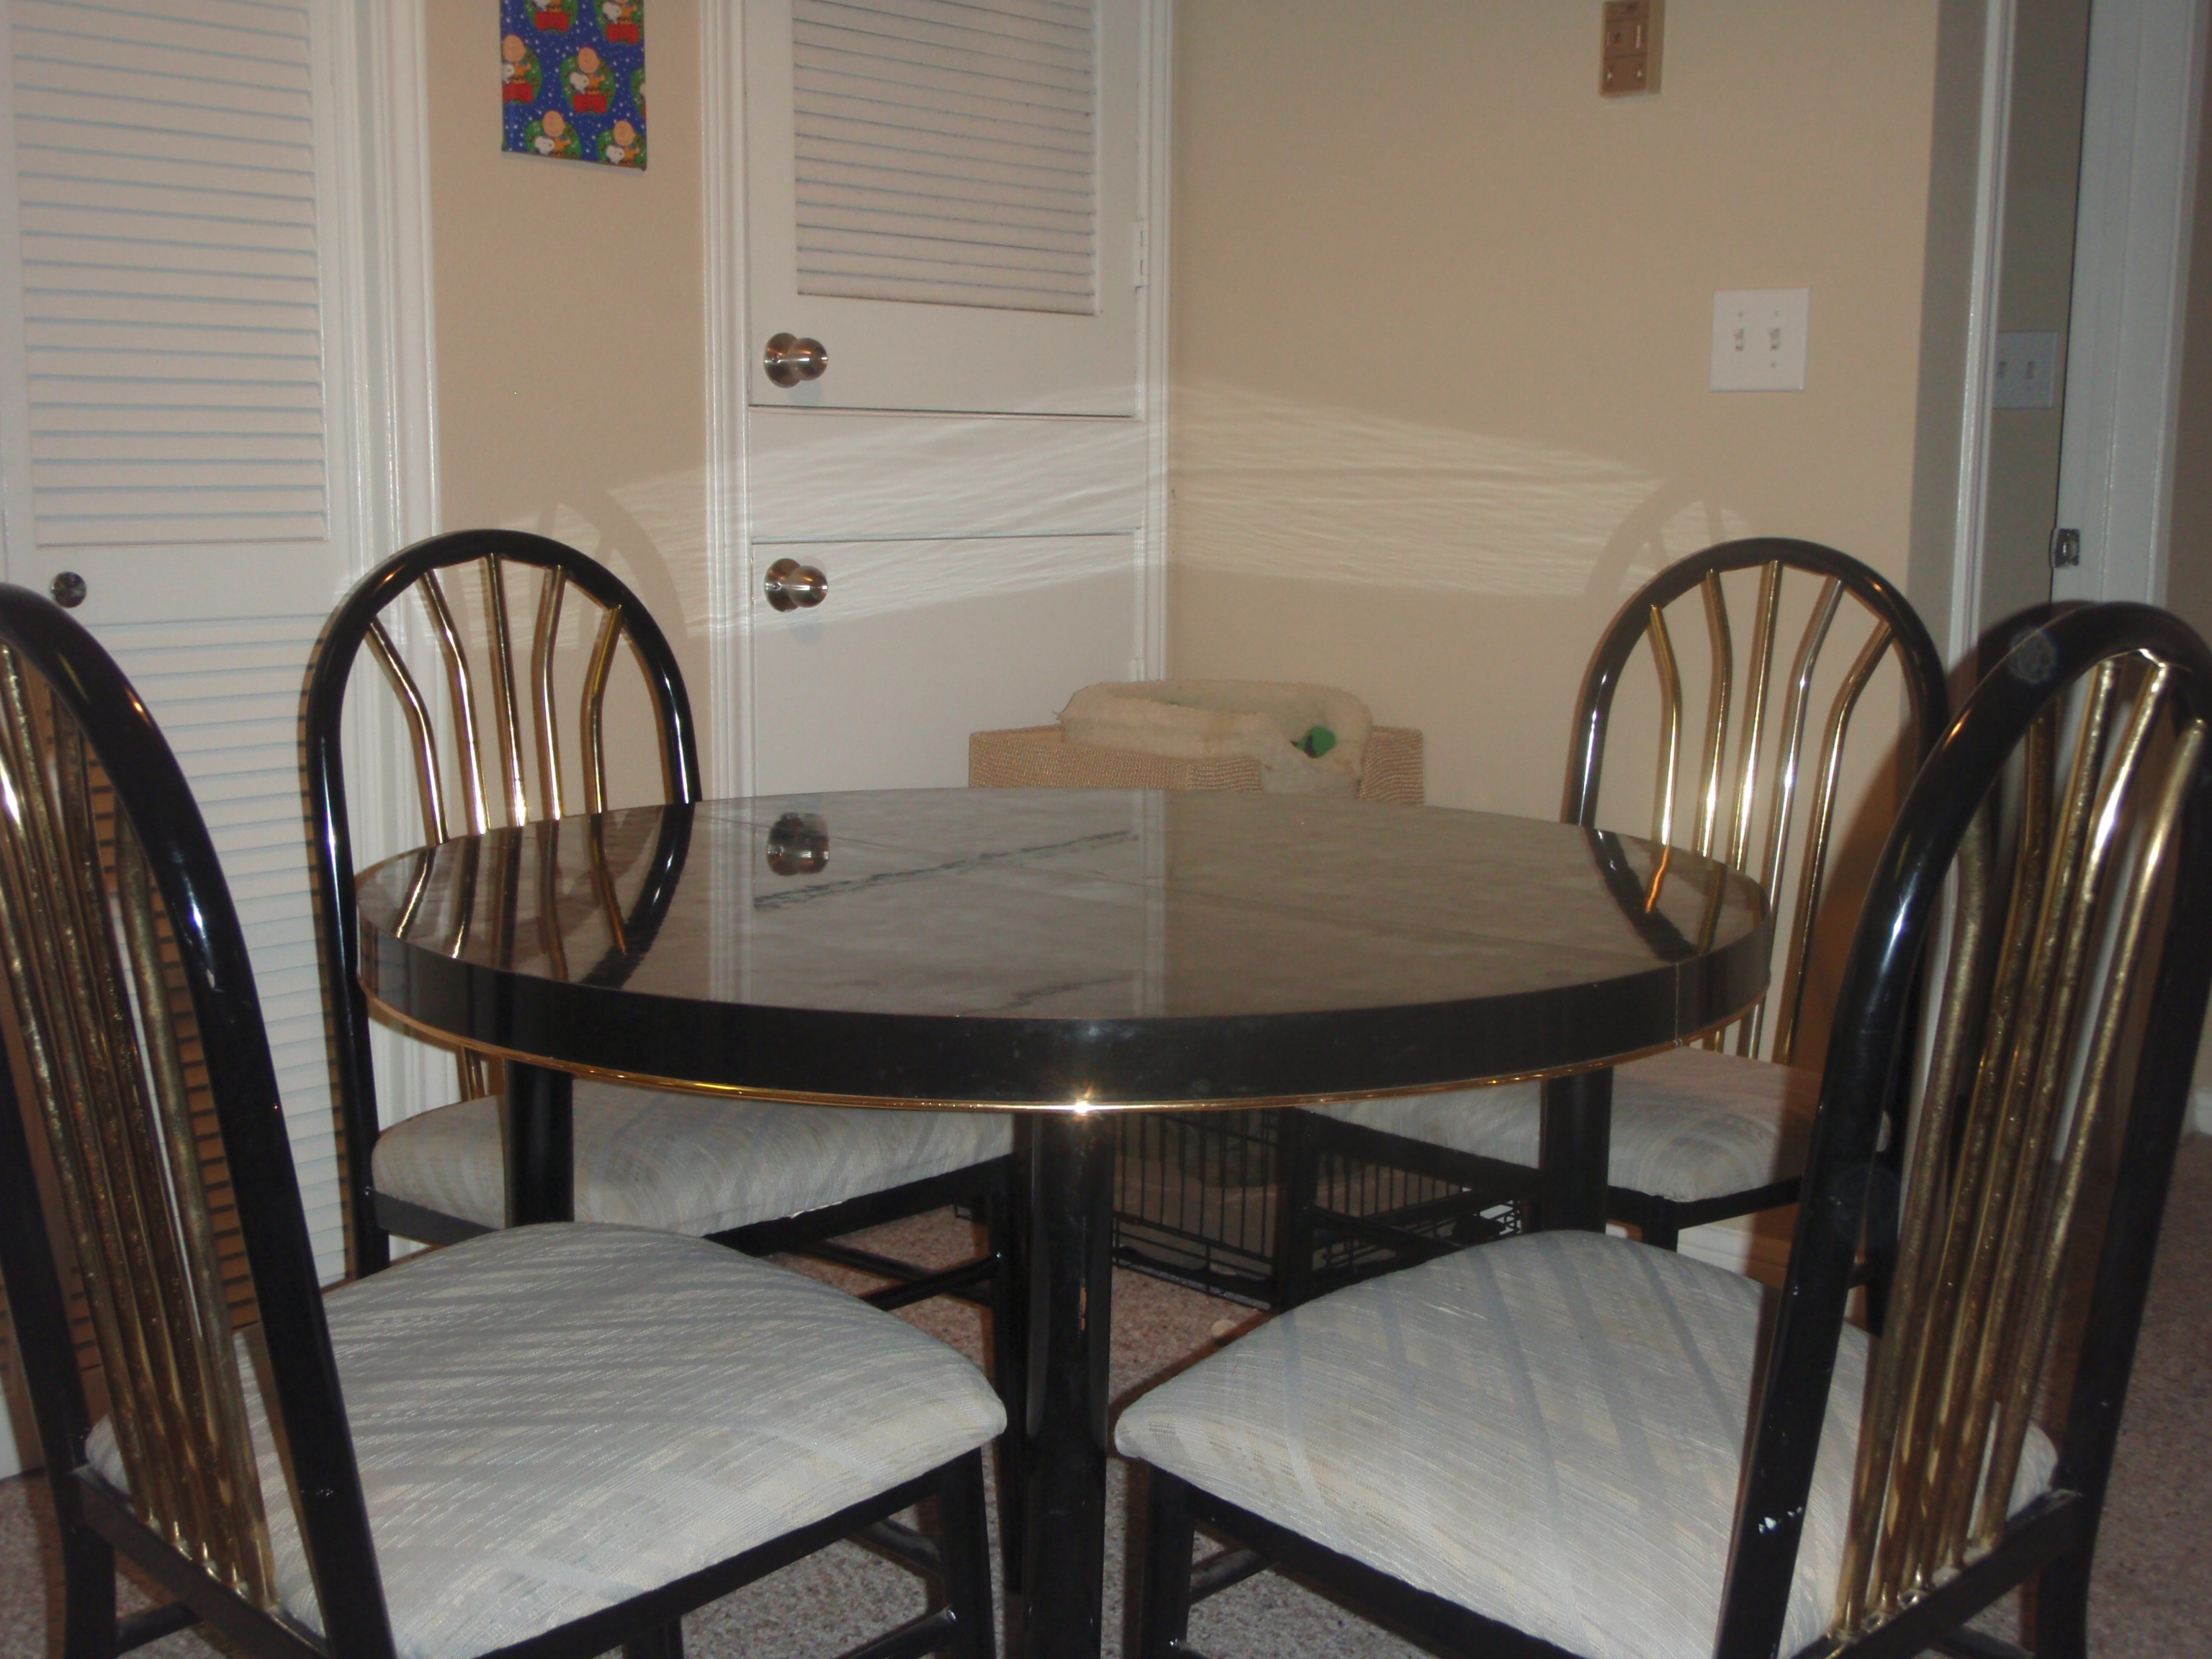 Dining room table plans free wooden plans easy computer for Free dining table plans